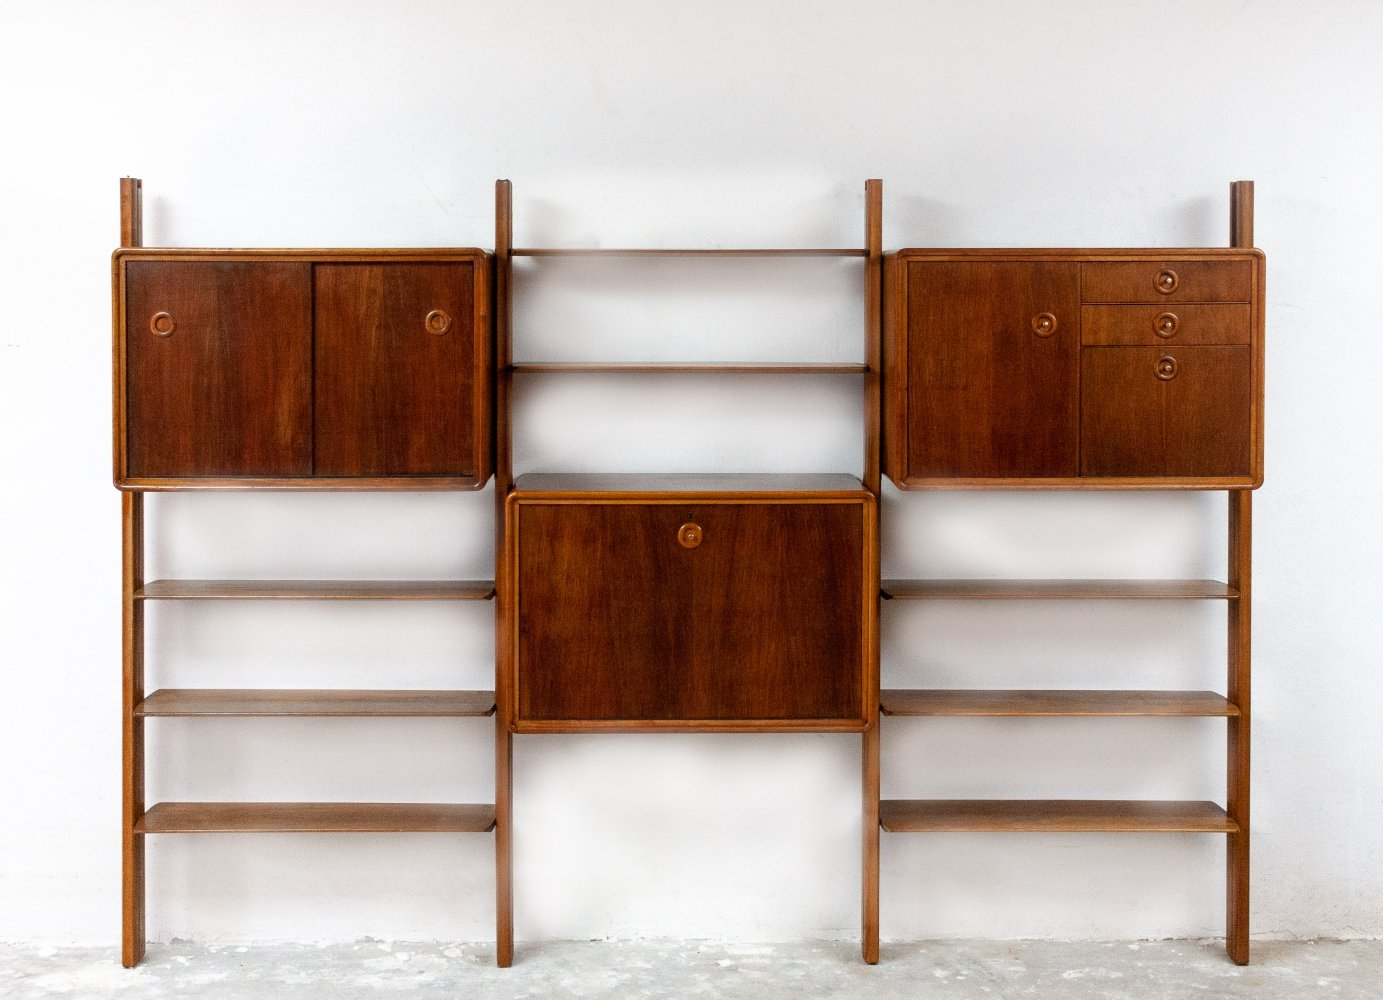 Modular wall system by William Watting for Fristho, 1950s